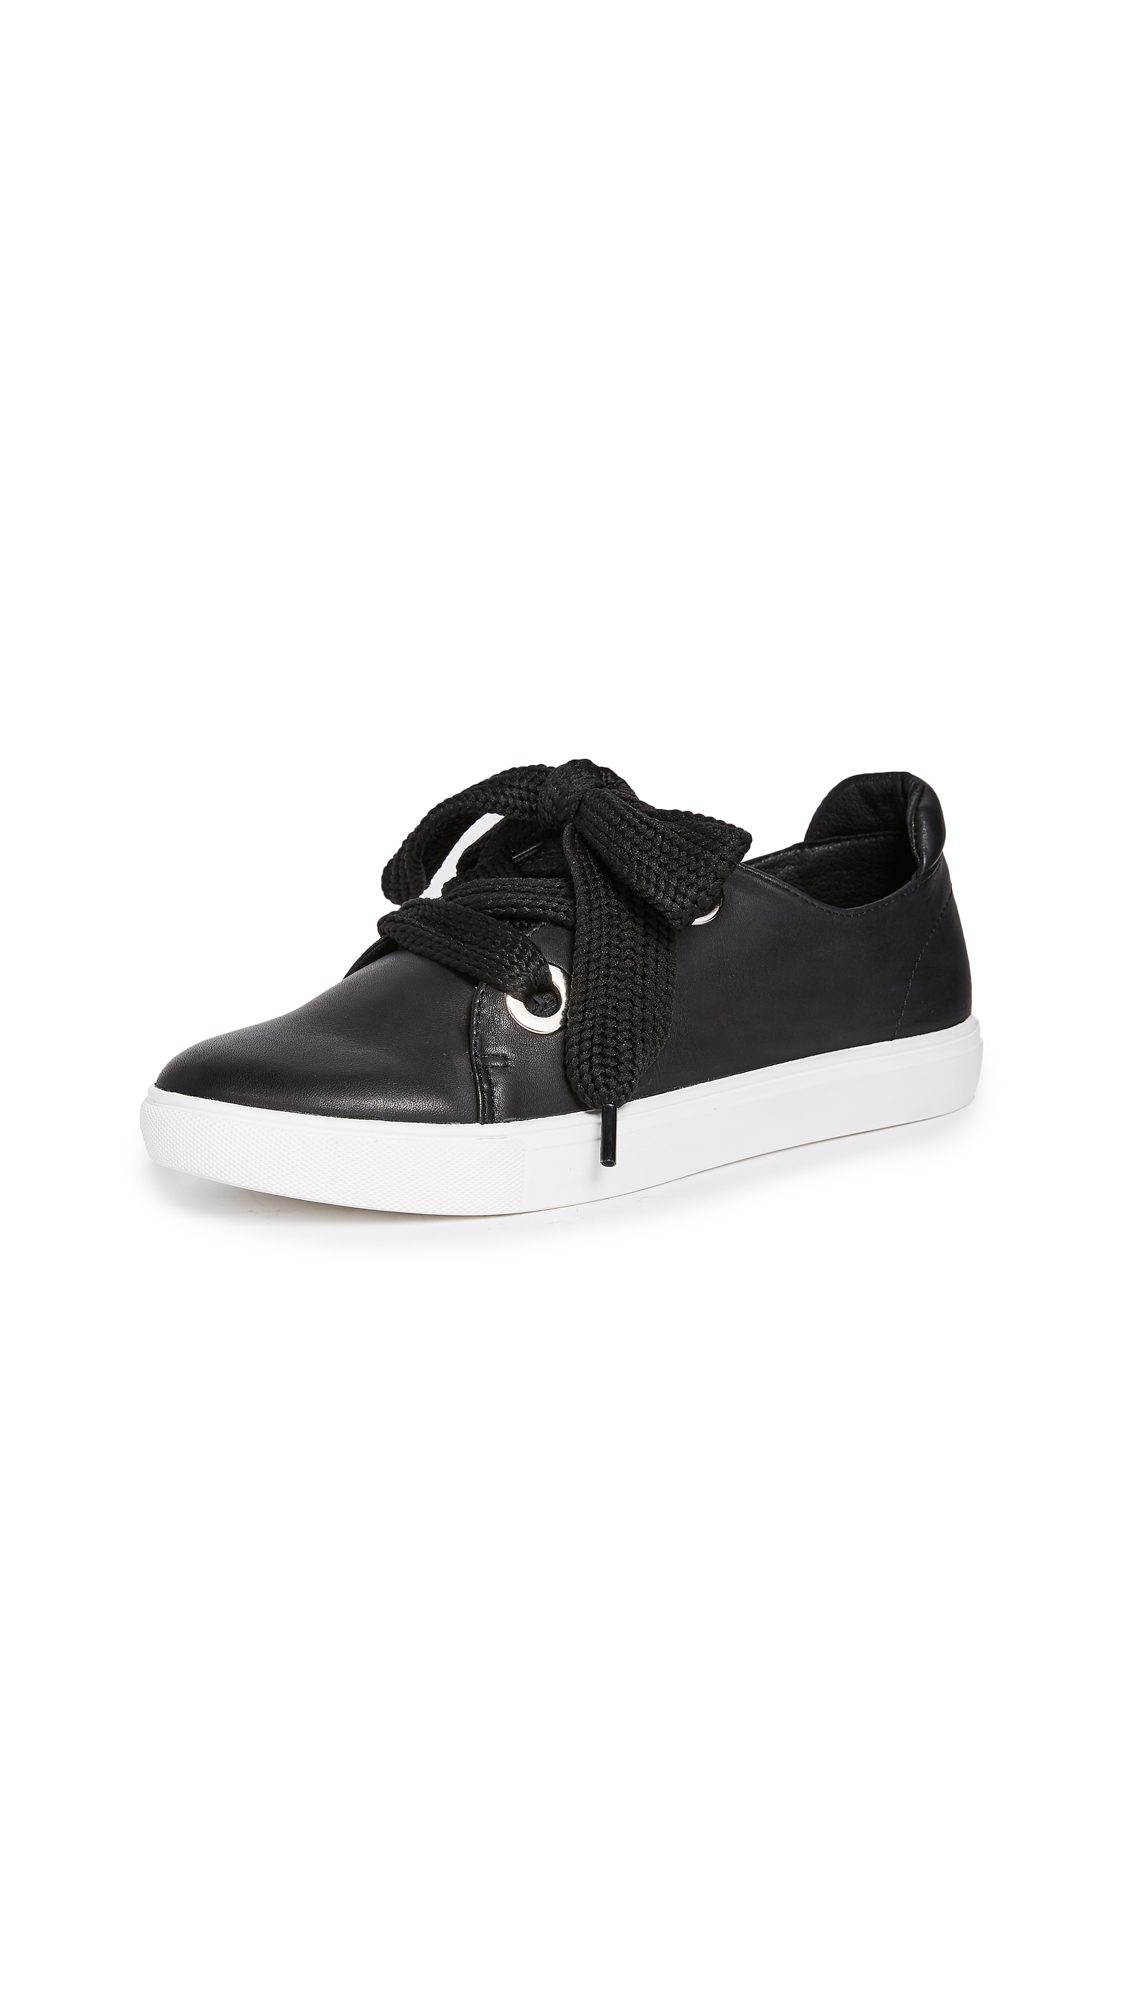 Yosi Samra Laurel Sneakers